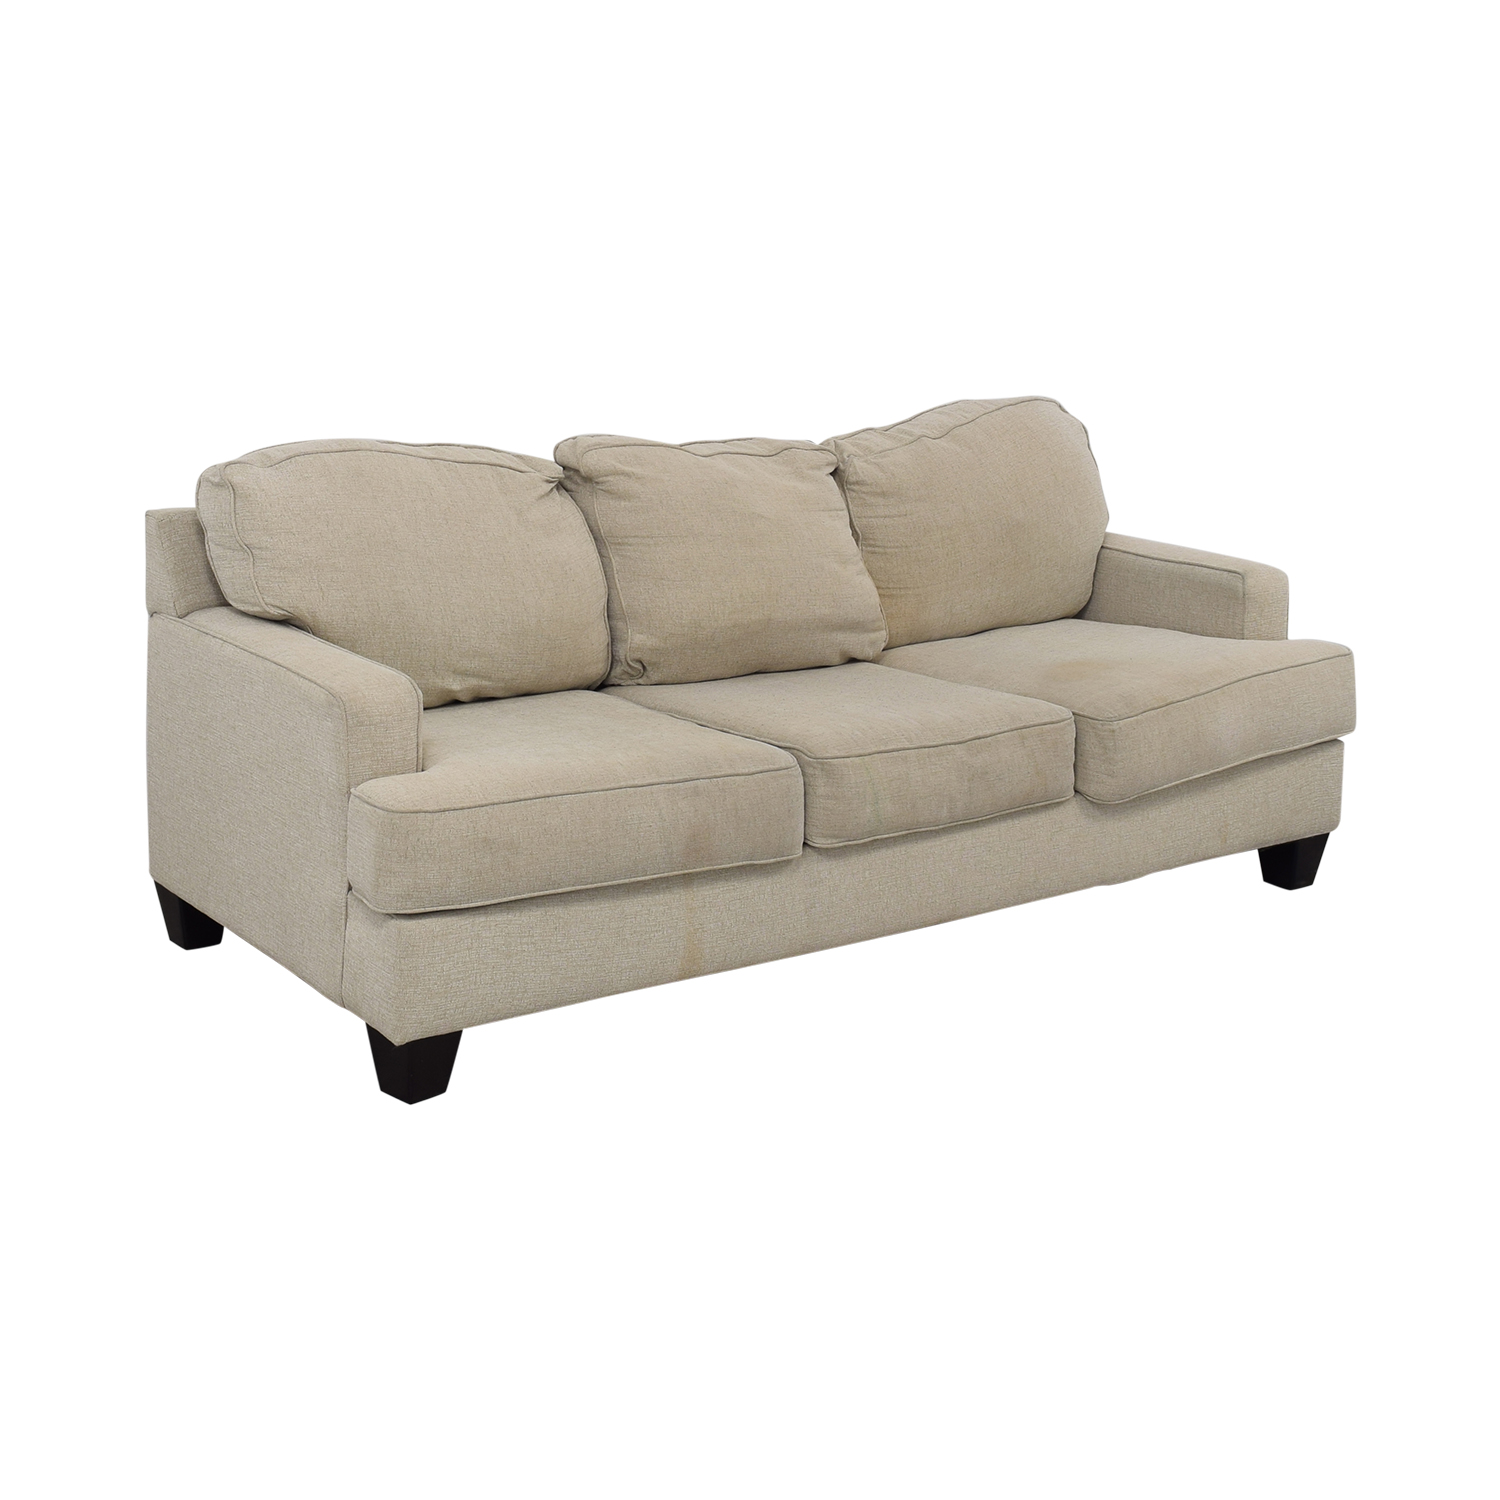 Ashley Furniture Ashley Furniture Sofa Classic Sofas